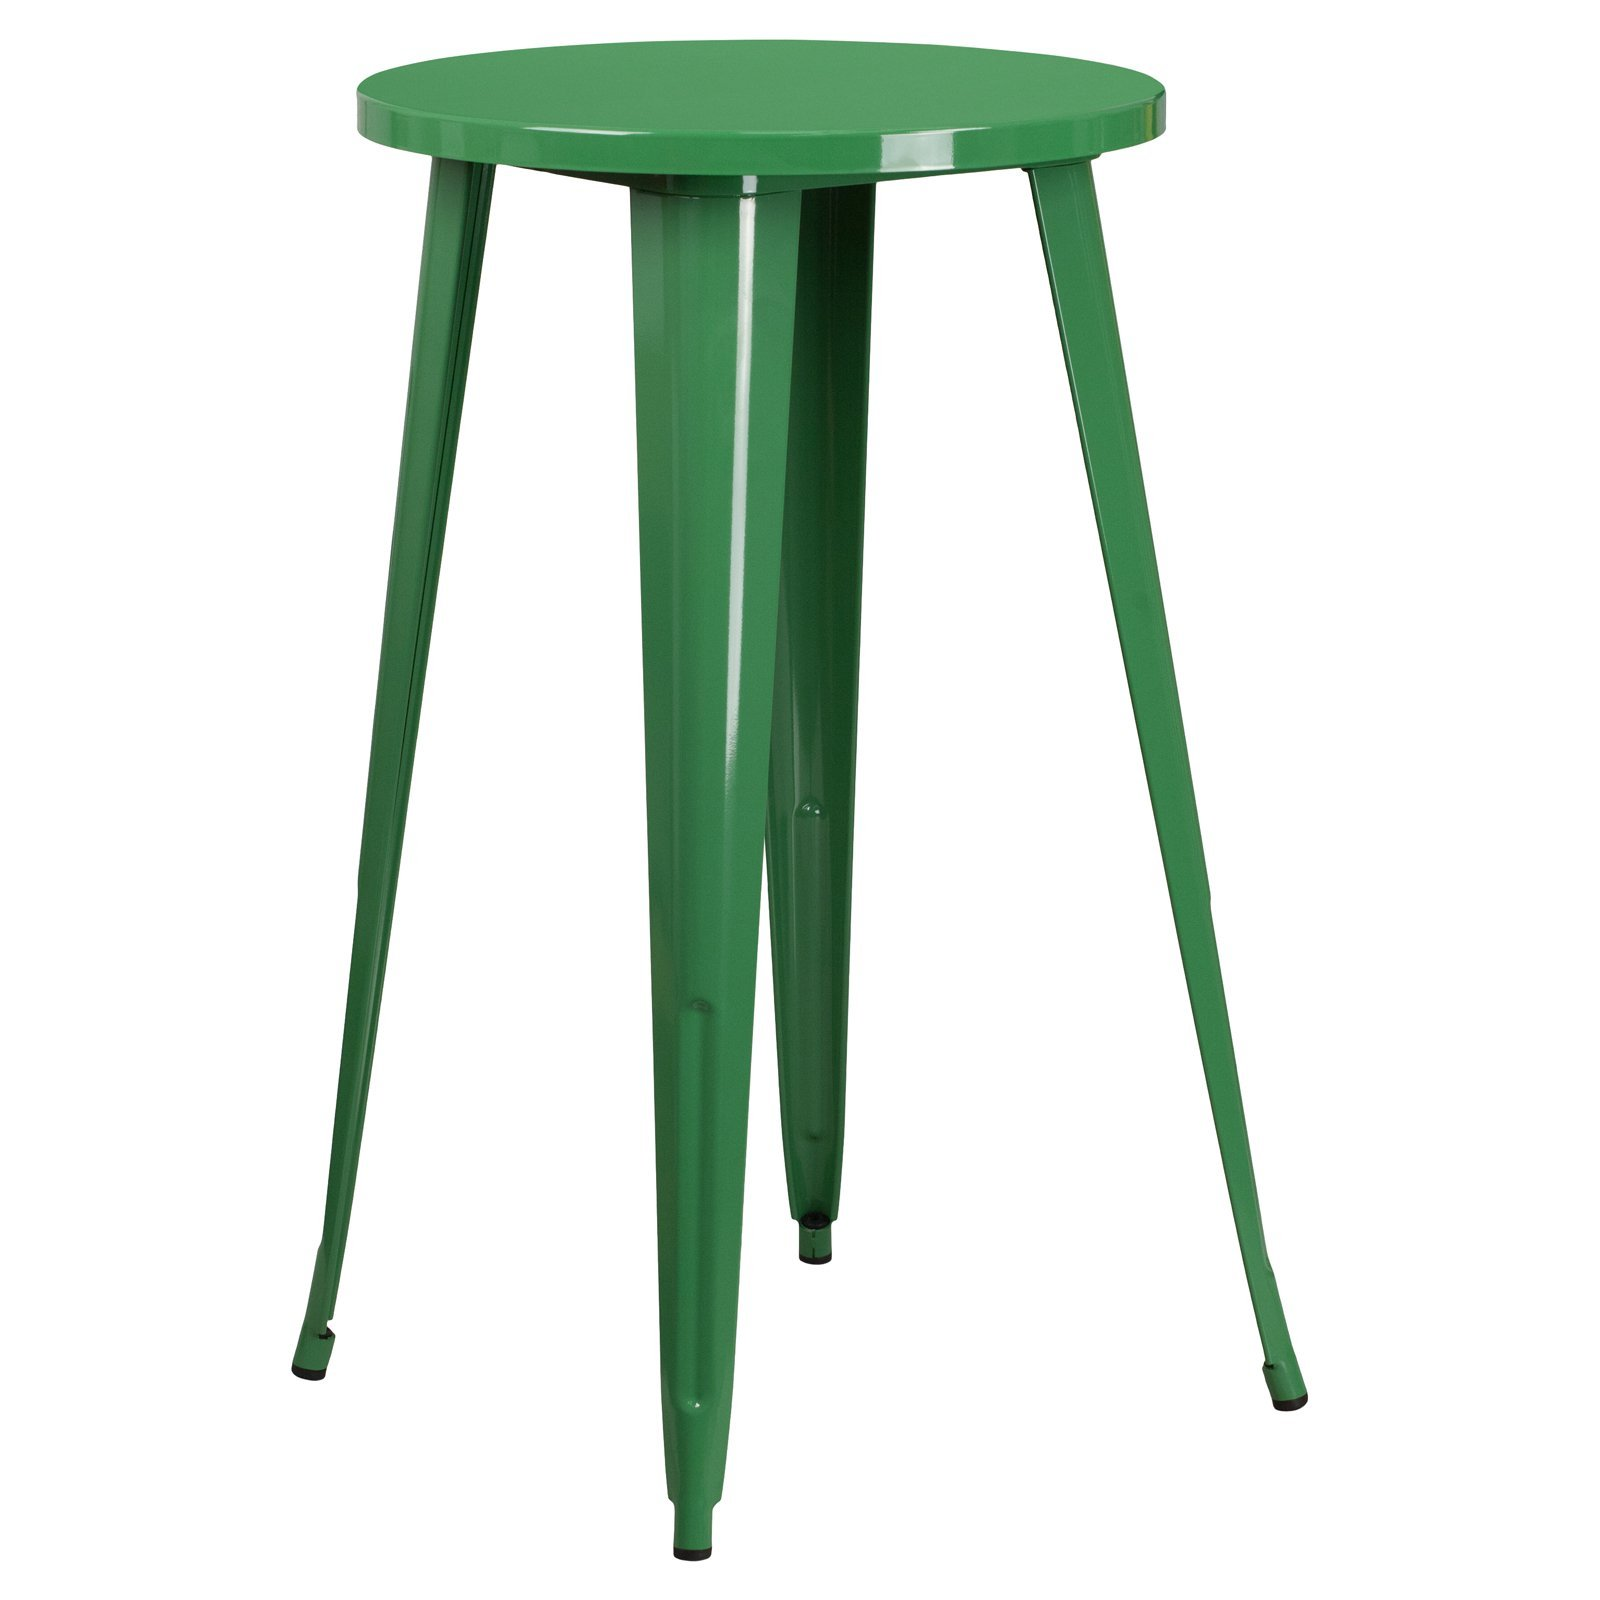 Basic Round Metal Indoor/Outdoor Bar Height Table with Protective Rubber Feet to Prevent Floor Damage, Thick Brace Underneath for Added Stability, Green + Expert Home Guide by Love US